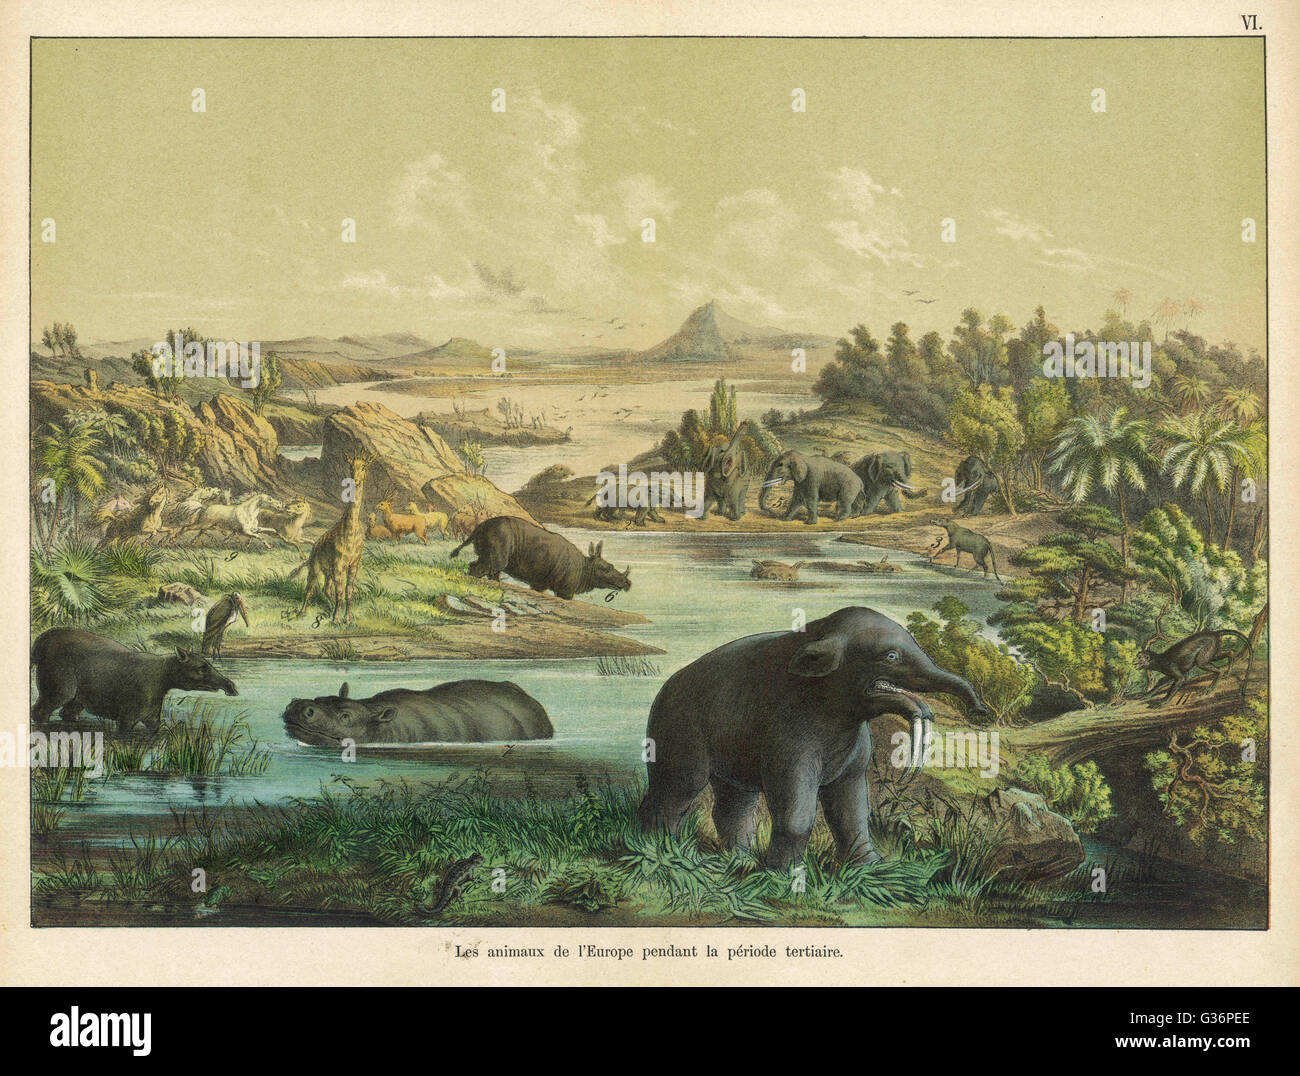 View of a prehistoric landscape, with animals, during the Tertiary Era in Europe (Palaeocene to Pliocene).      - Stock Image